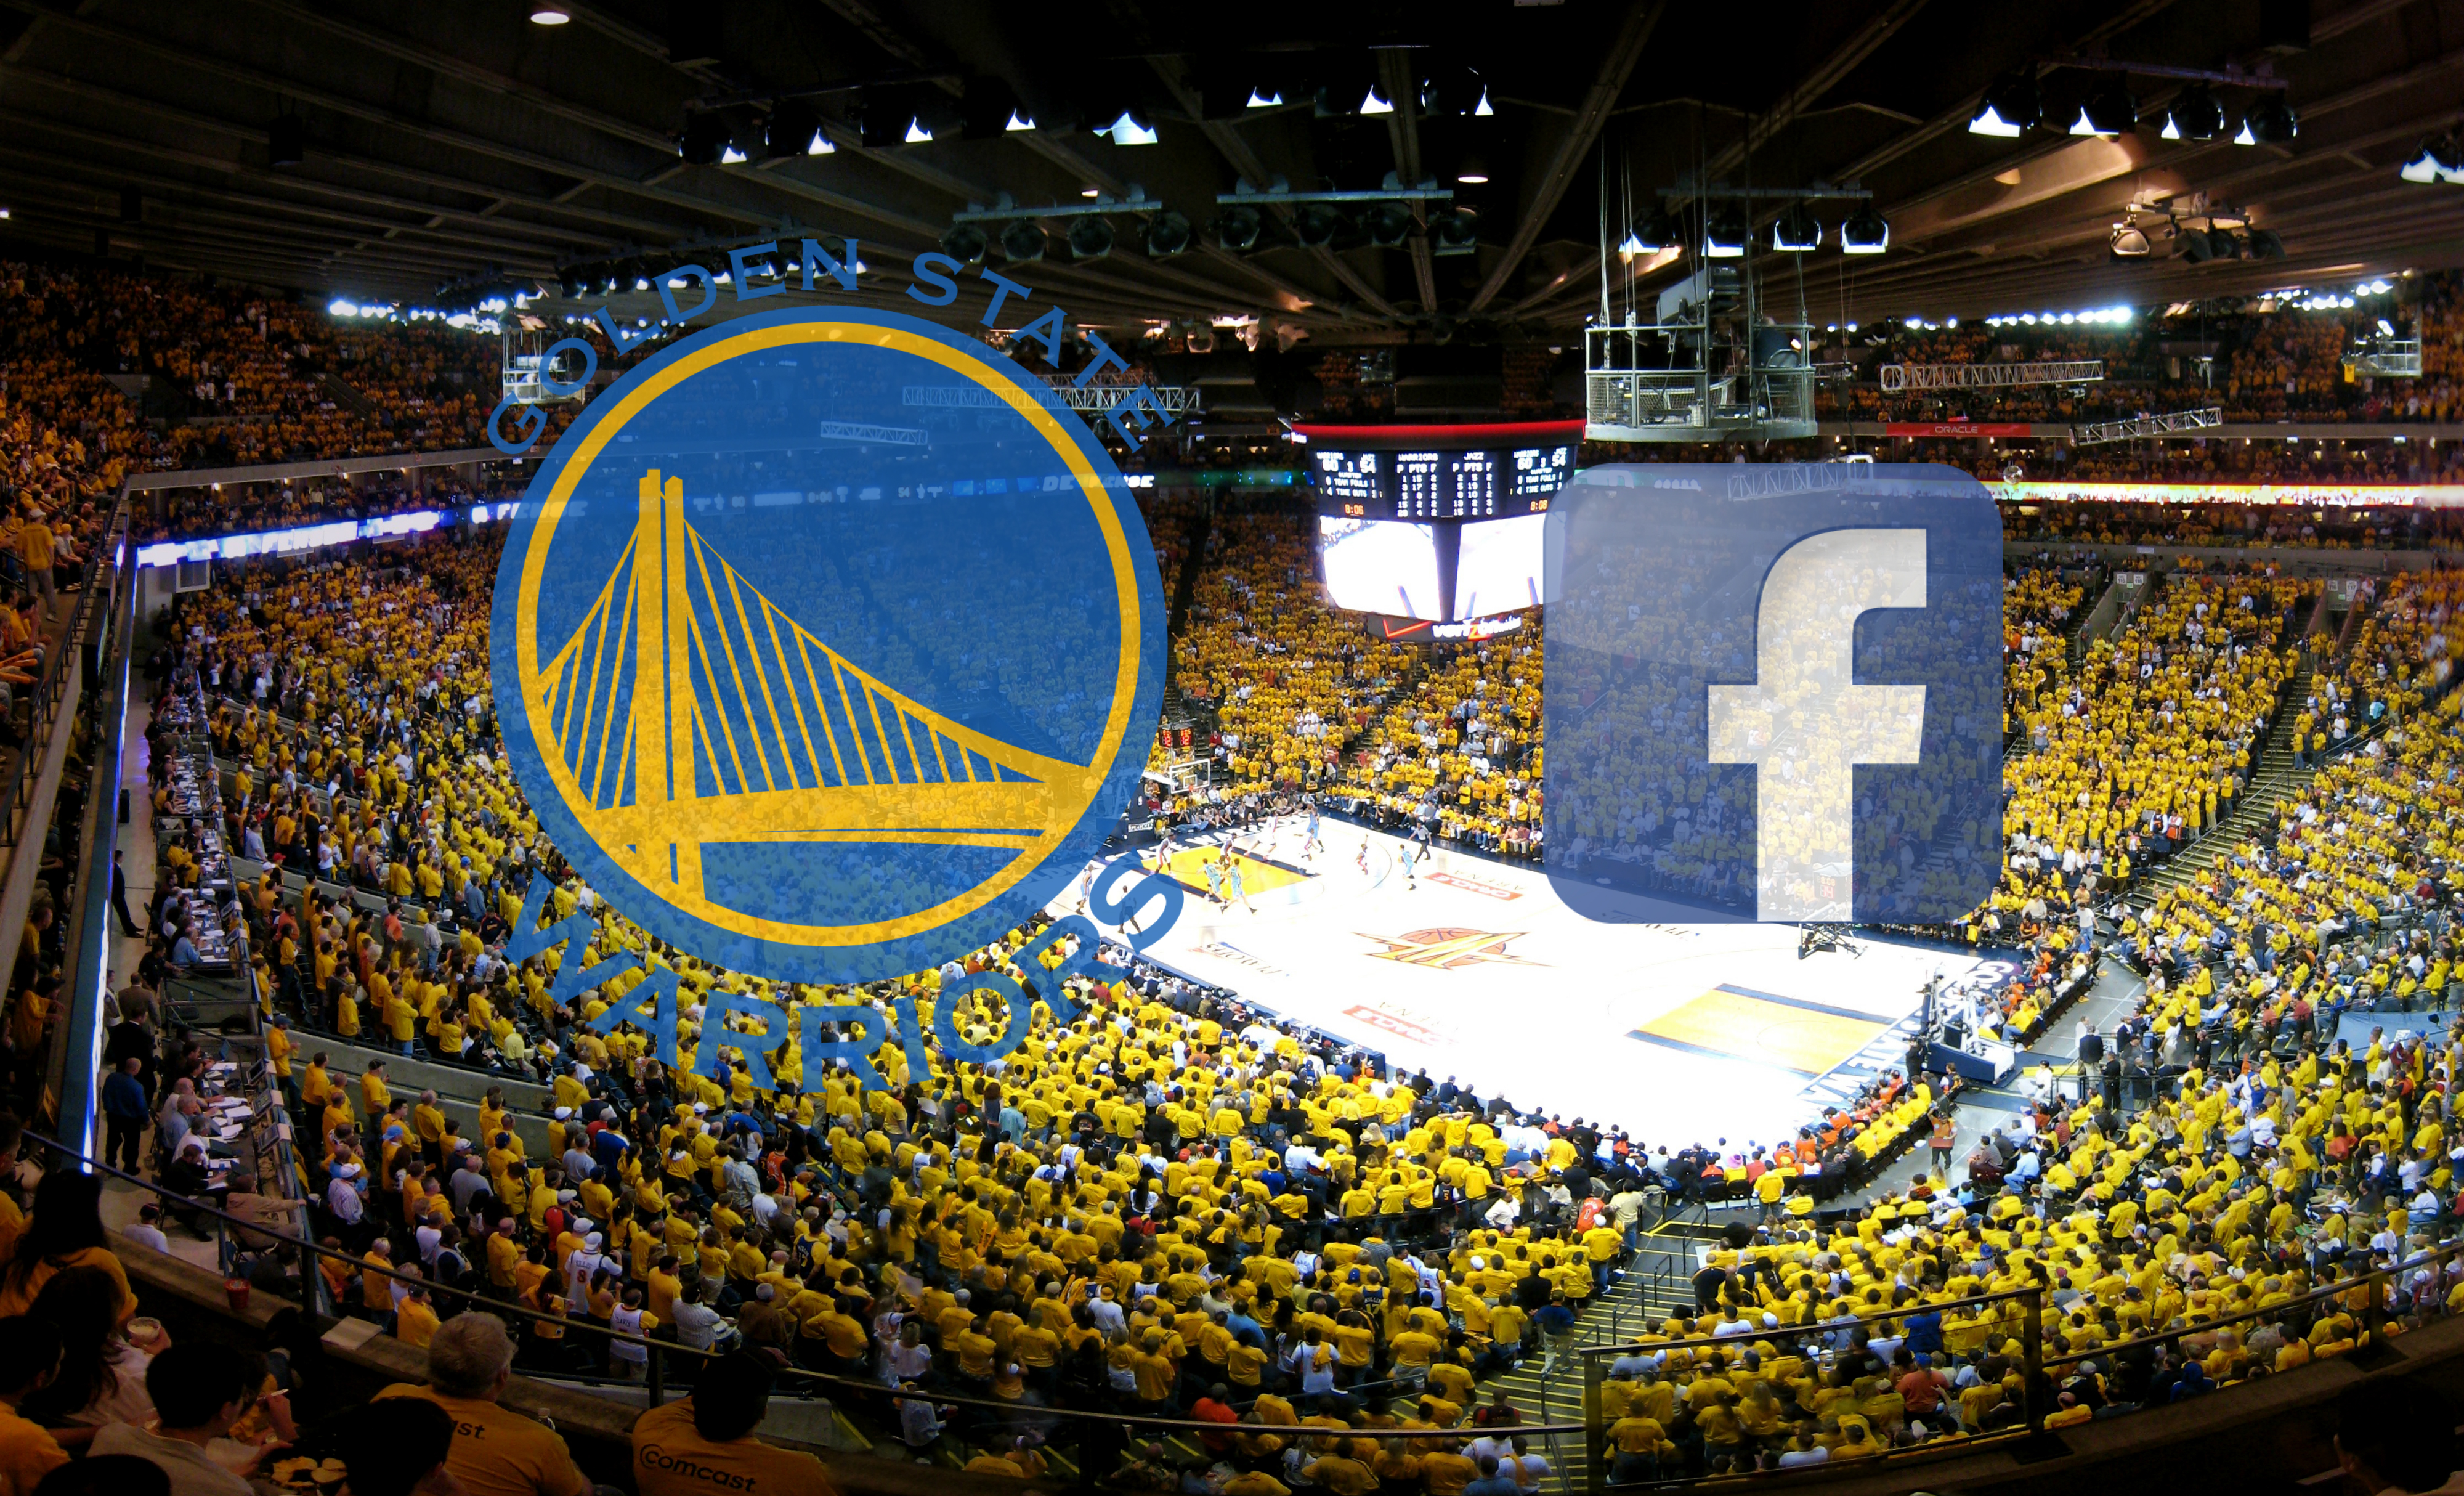 Golden State Warriors por Bryce Edwards CC BY 2.0], via Wikimedia Commons